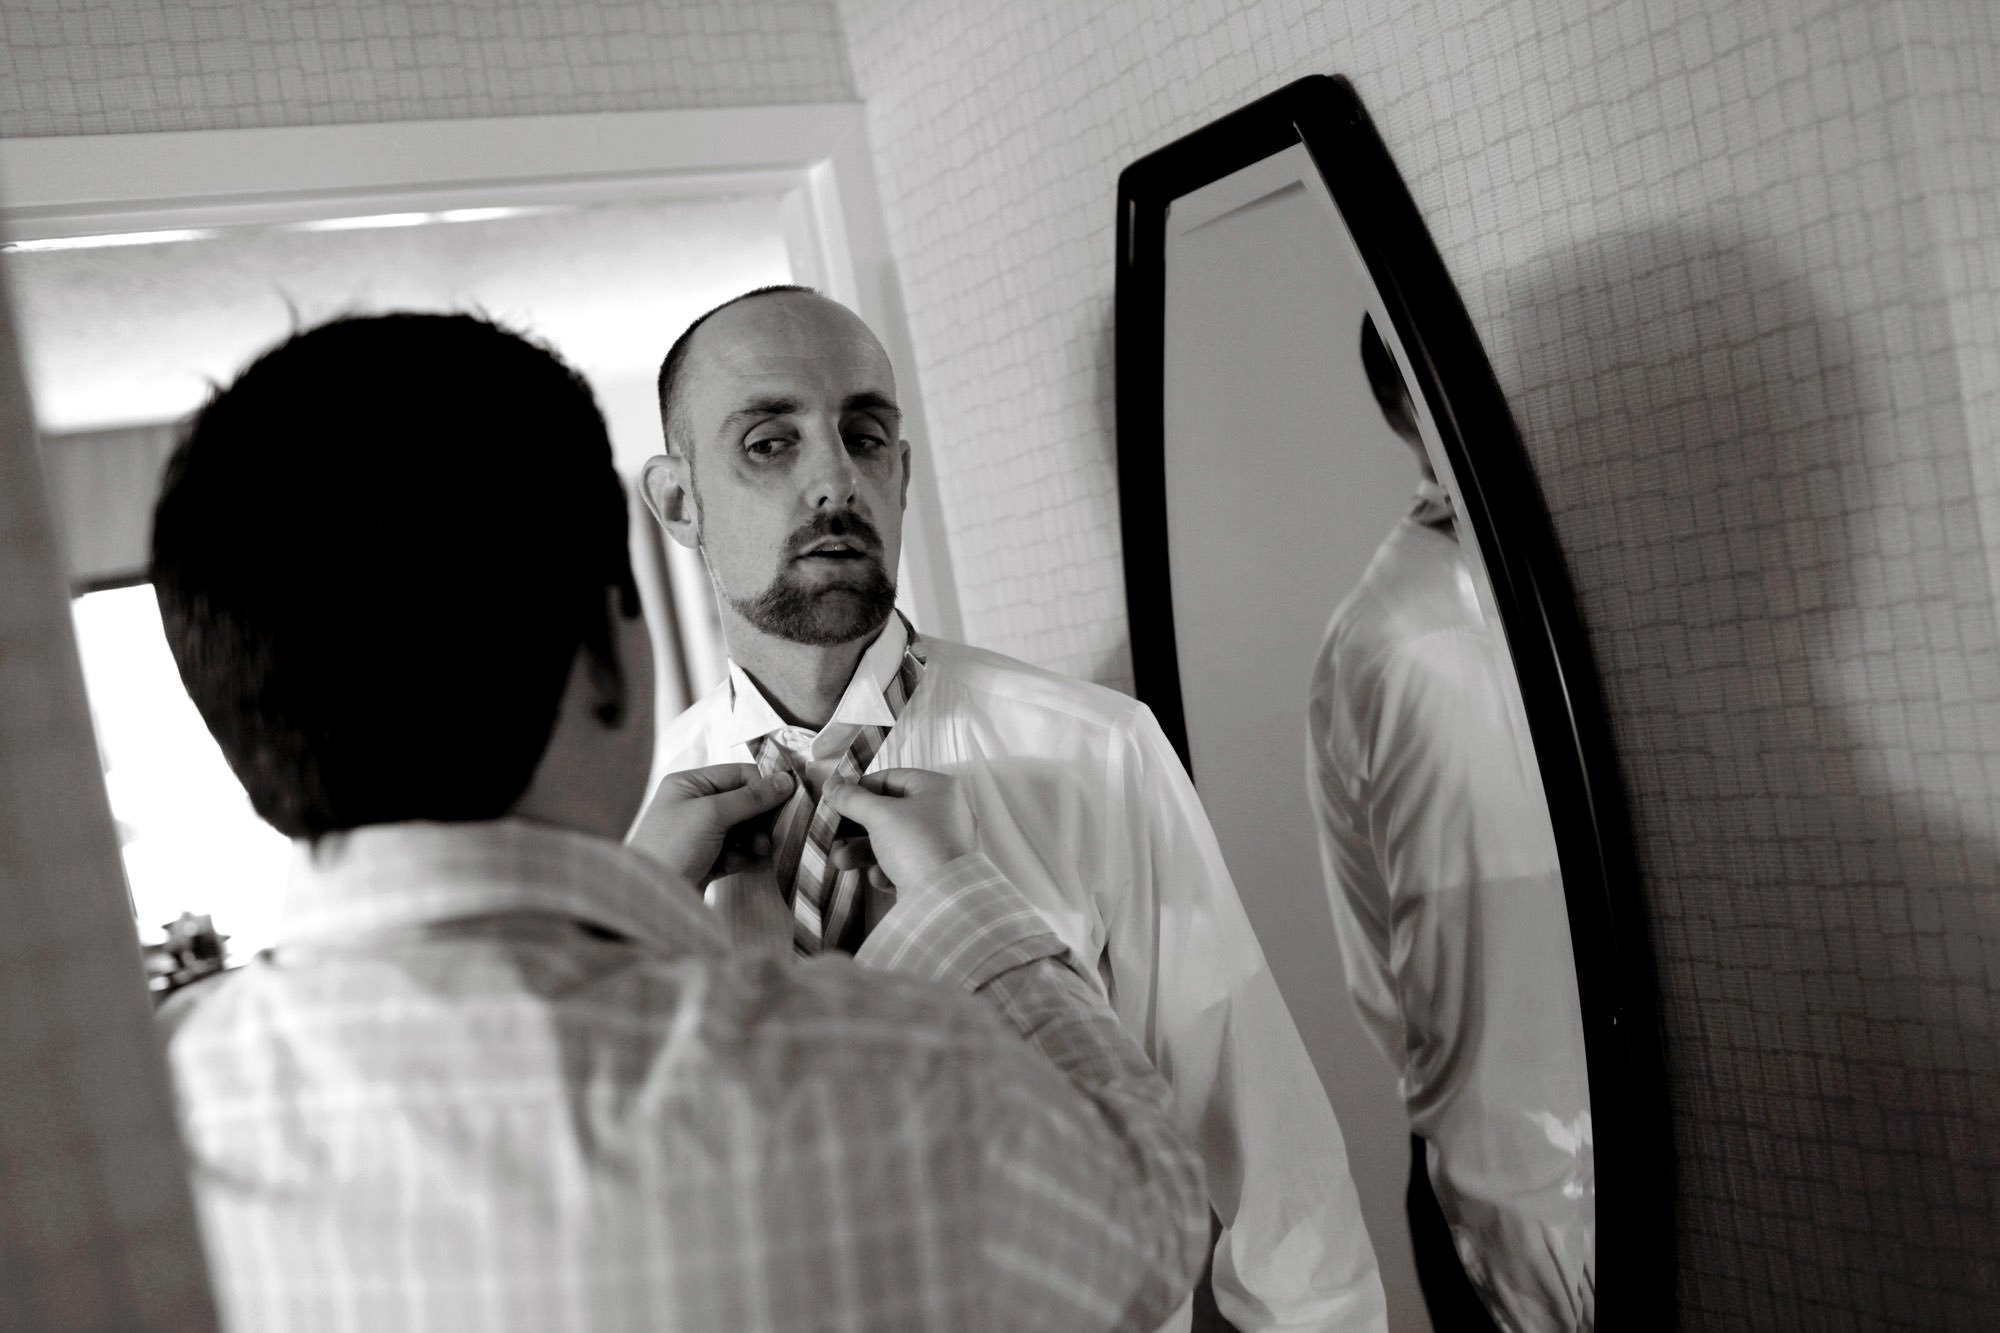 A groomsman puts on his tie.